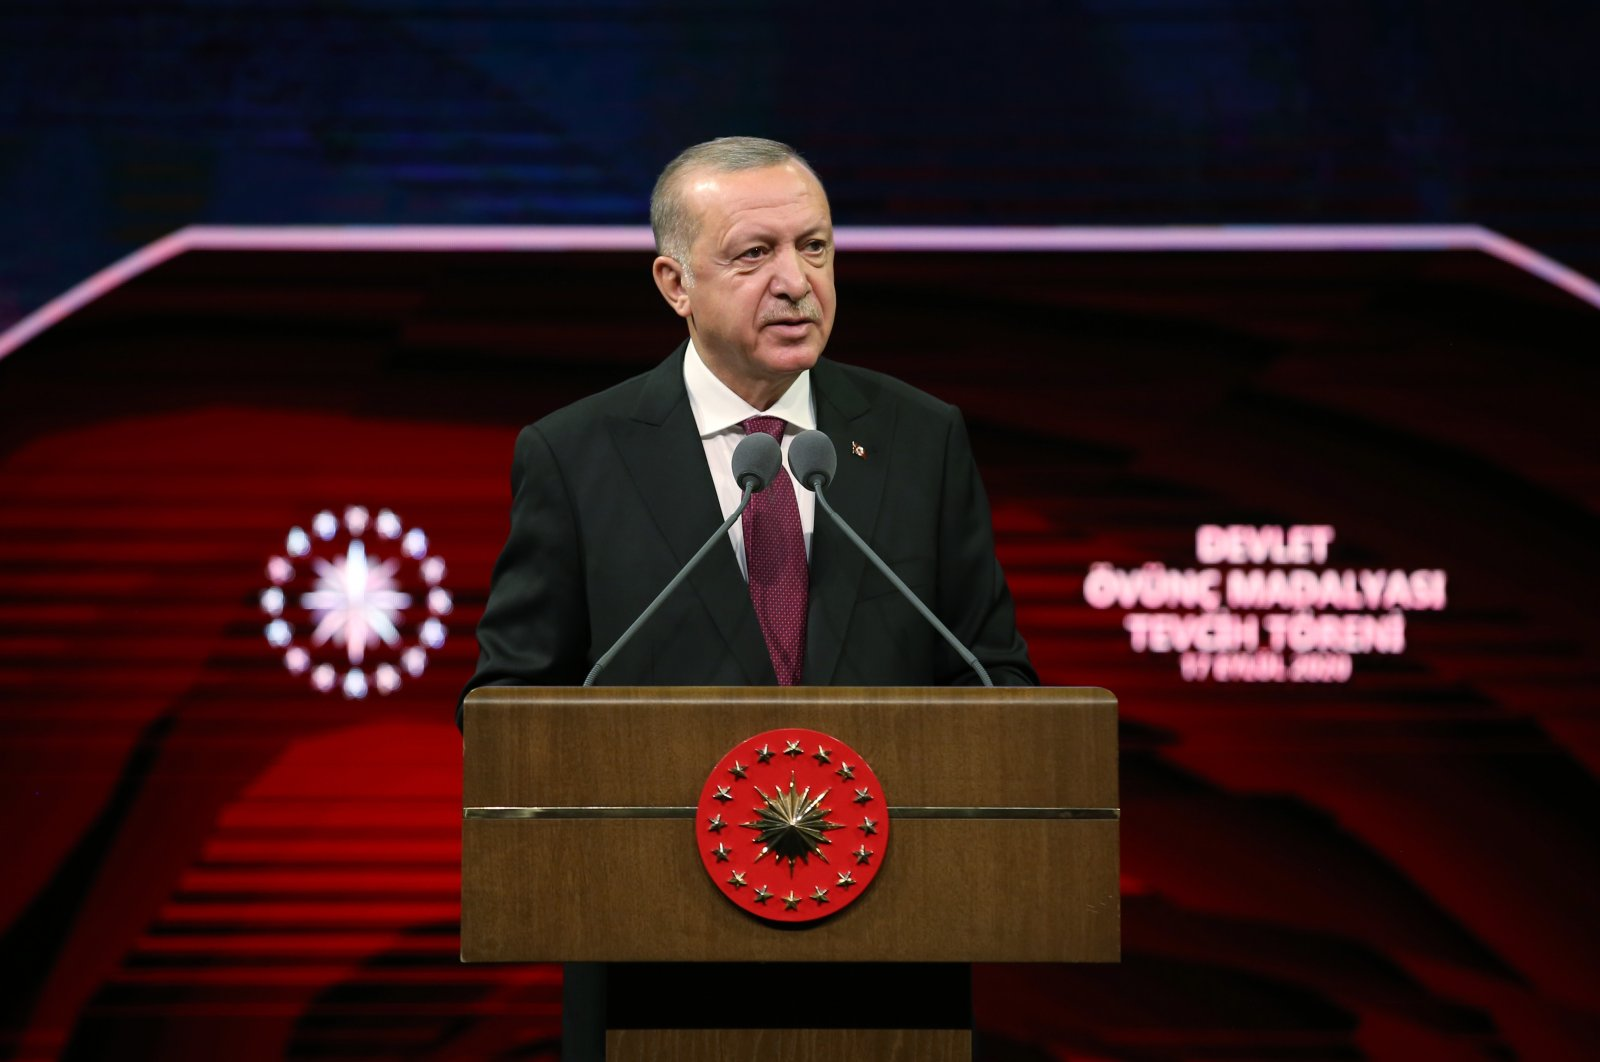 President Recep Tayyip Erdoğan speaks at the State Medal of Commendation Ceremony at Beştepe National Congress and Culture Center in the capital Ankara on Sept. 17, 2020. (AA Photo)